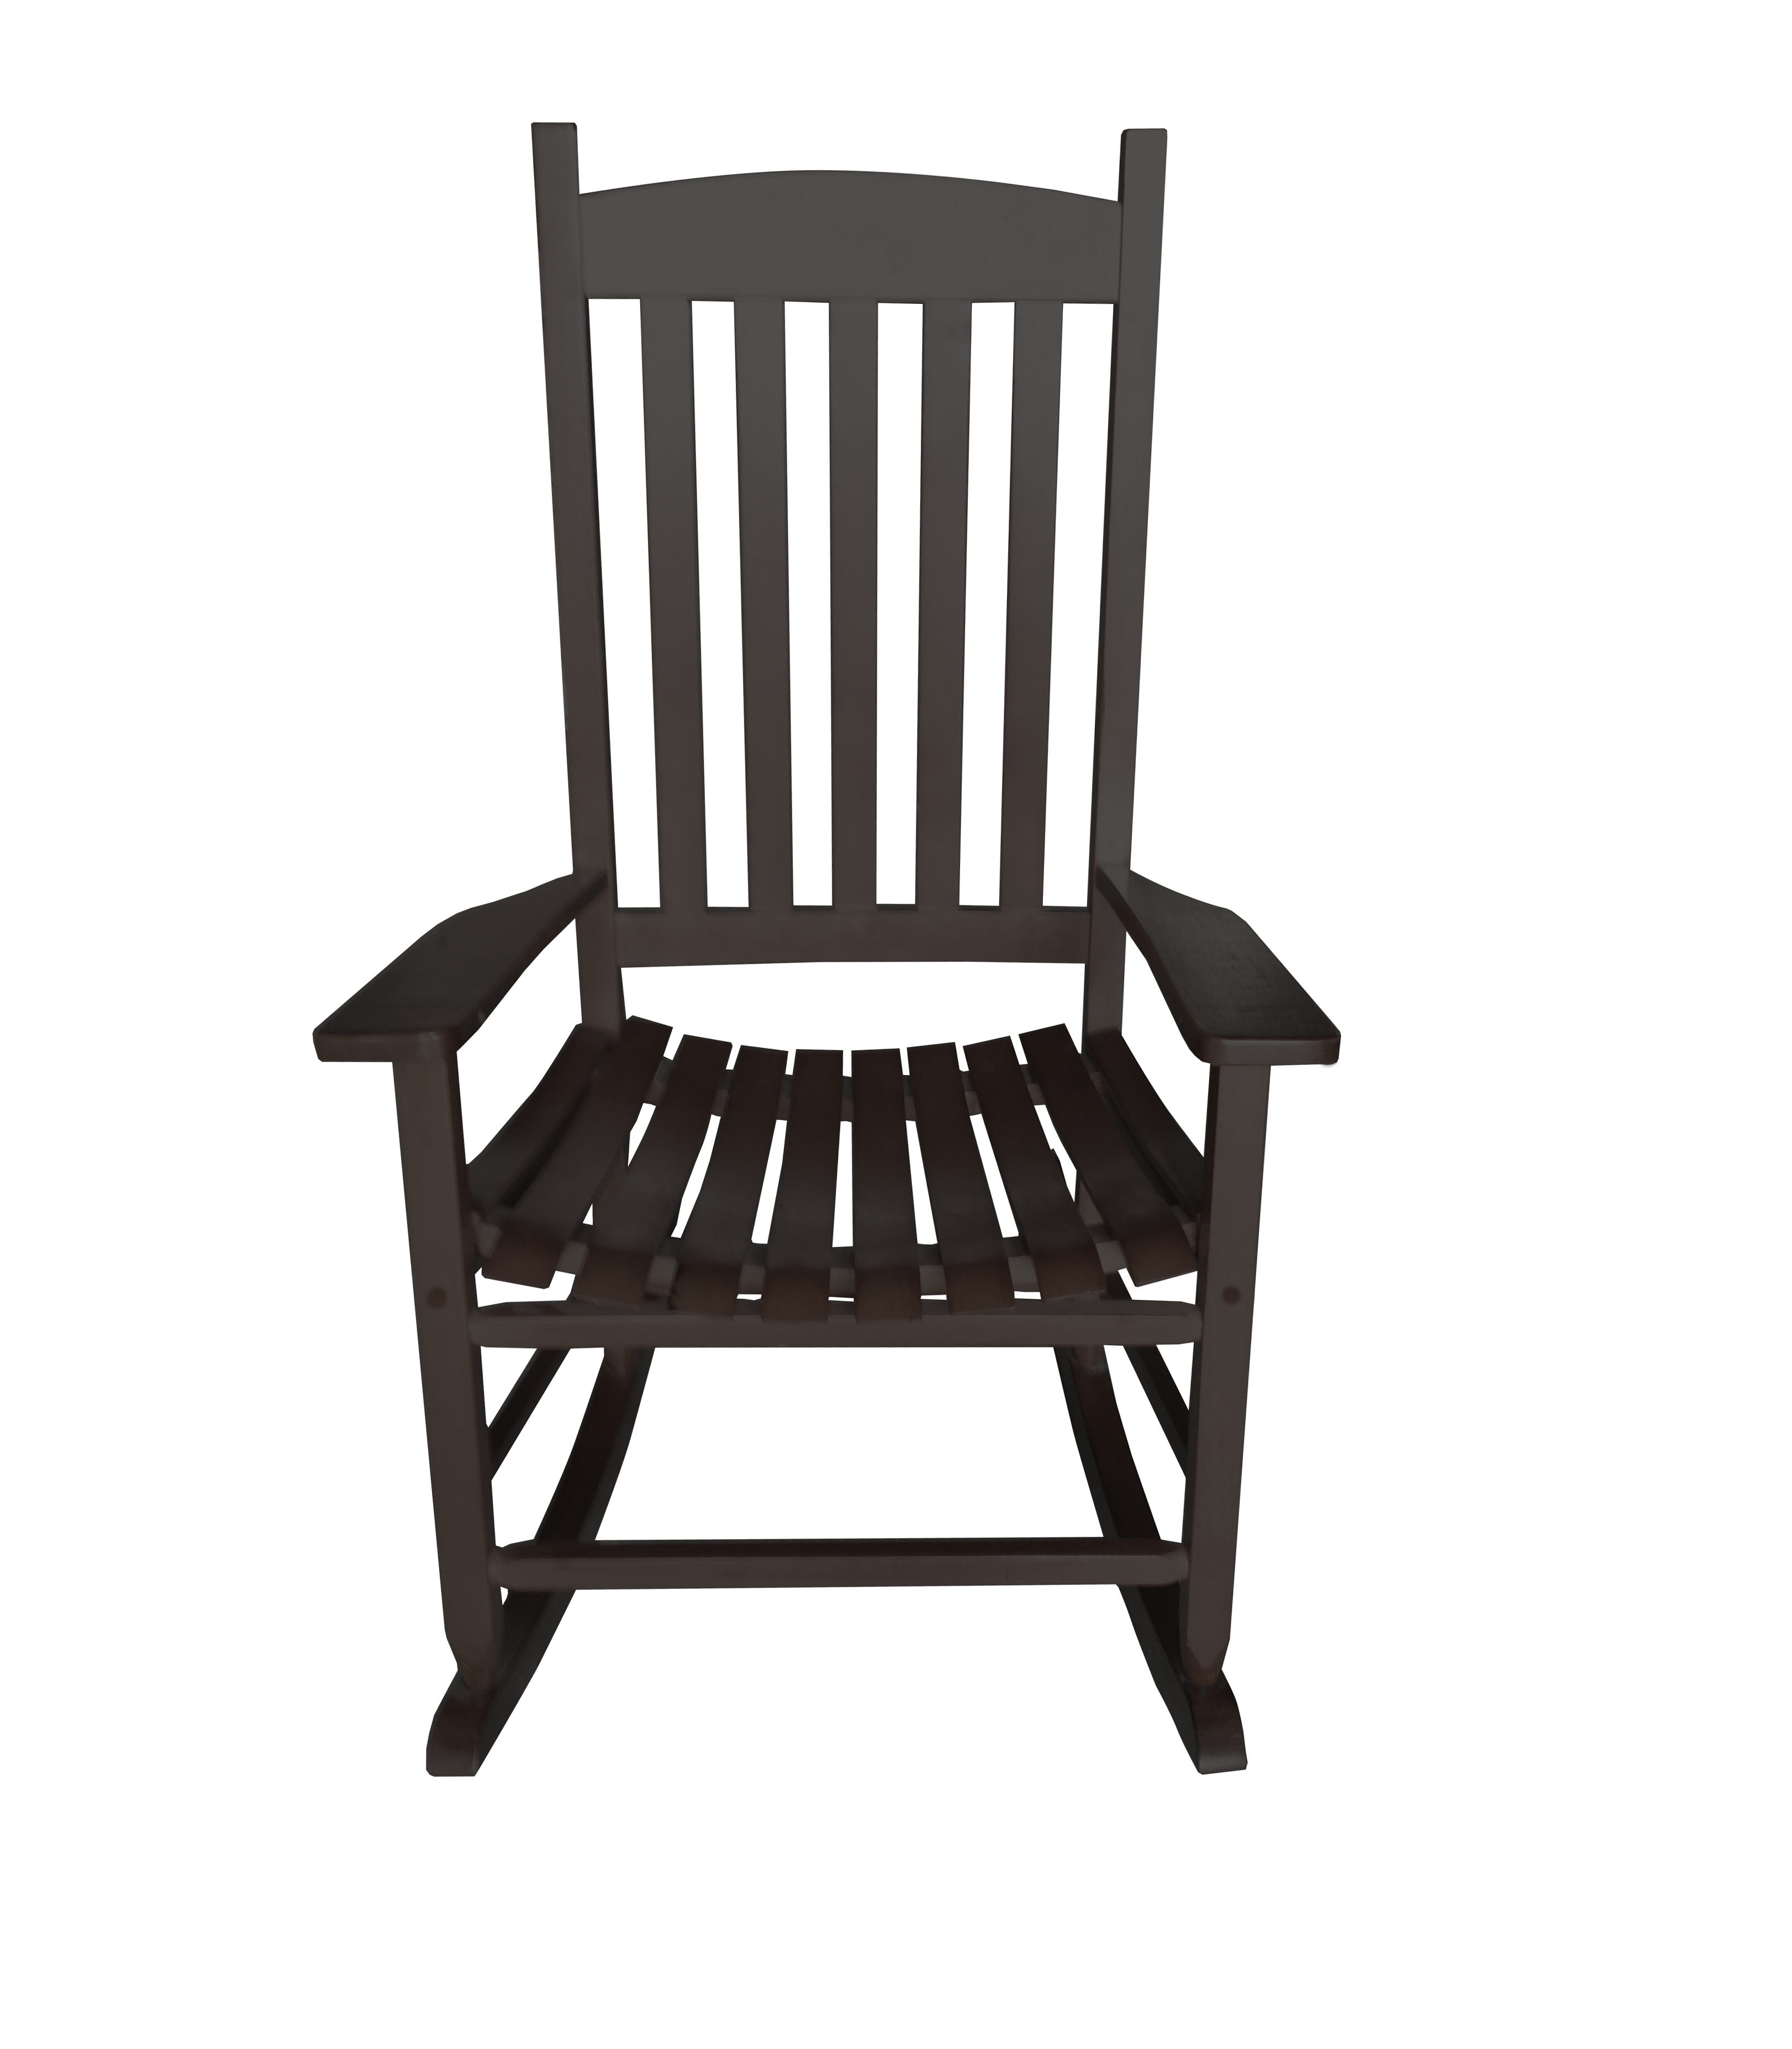 Mainstays Outdoor Wood Slat Rocking Chair - Walmart.com